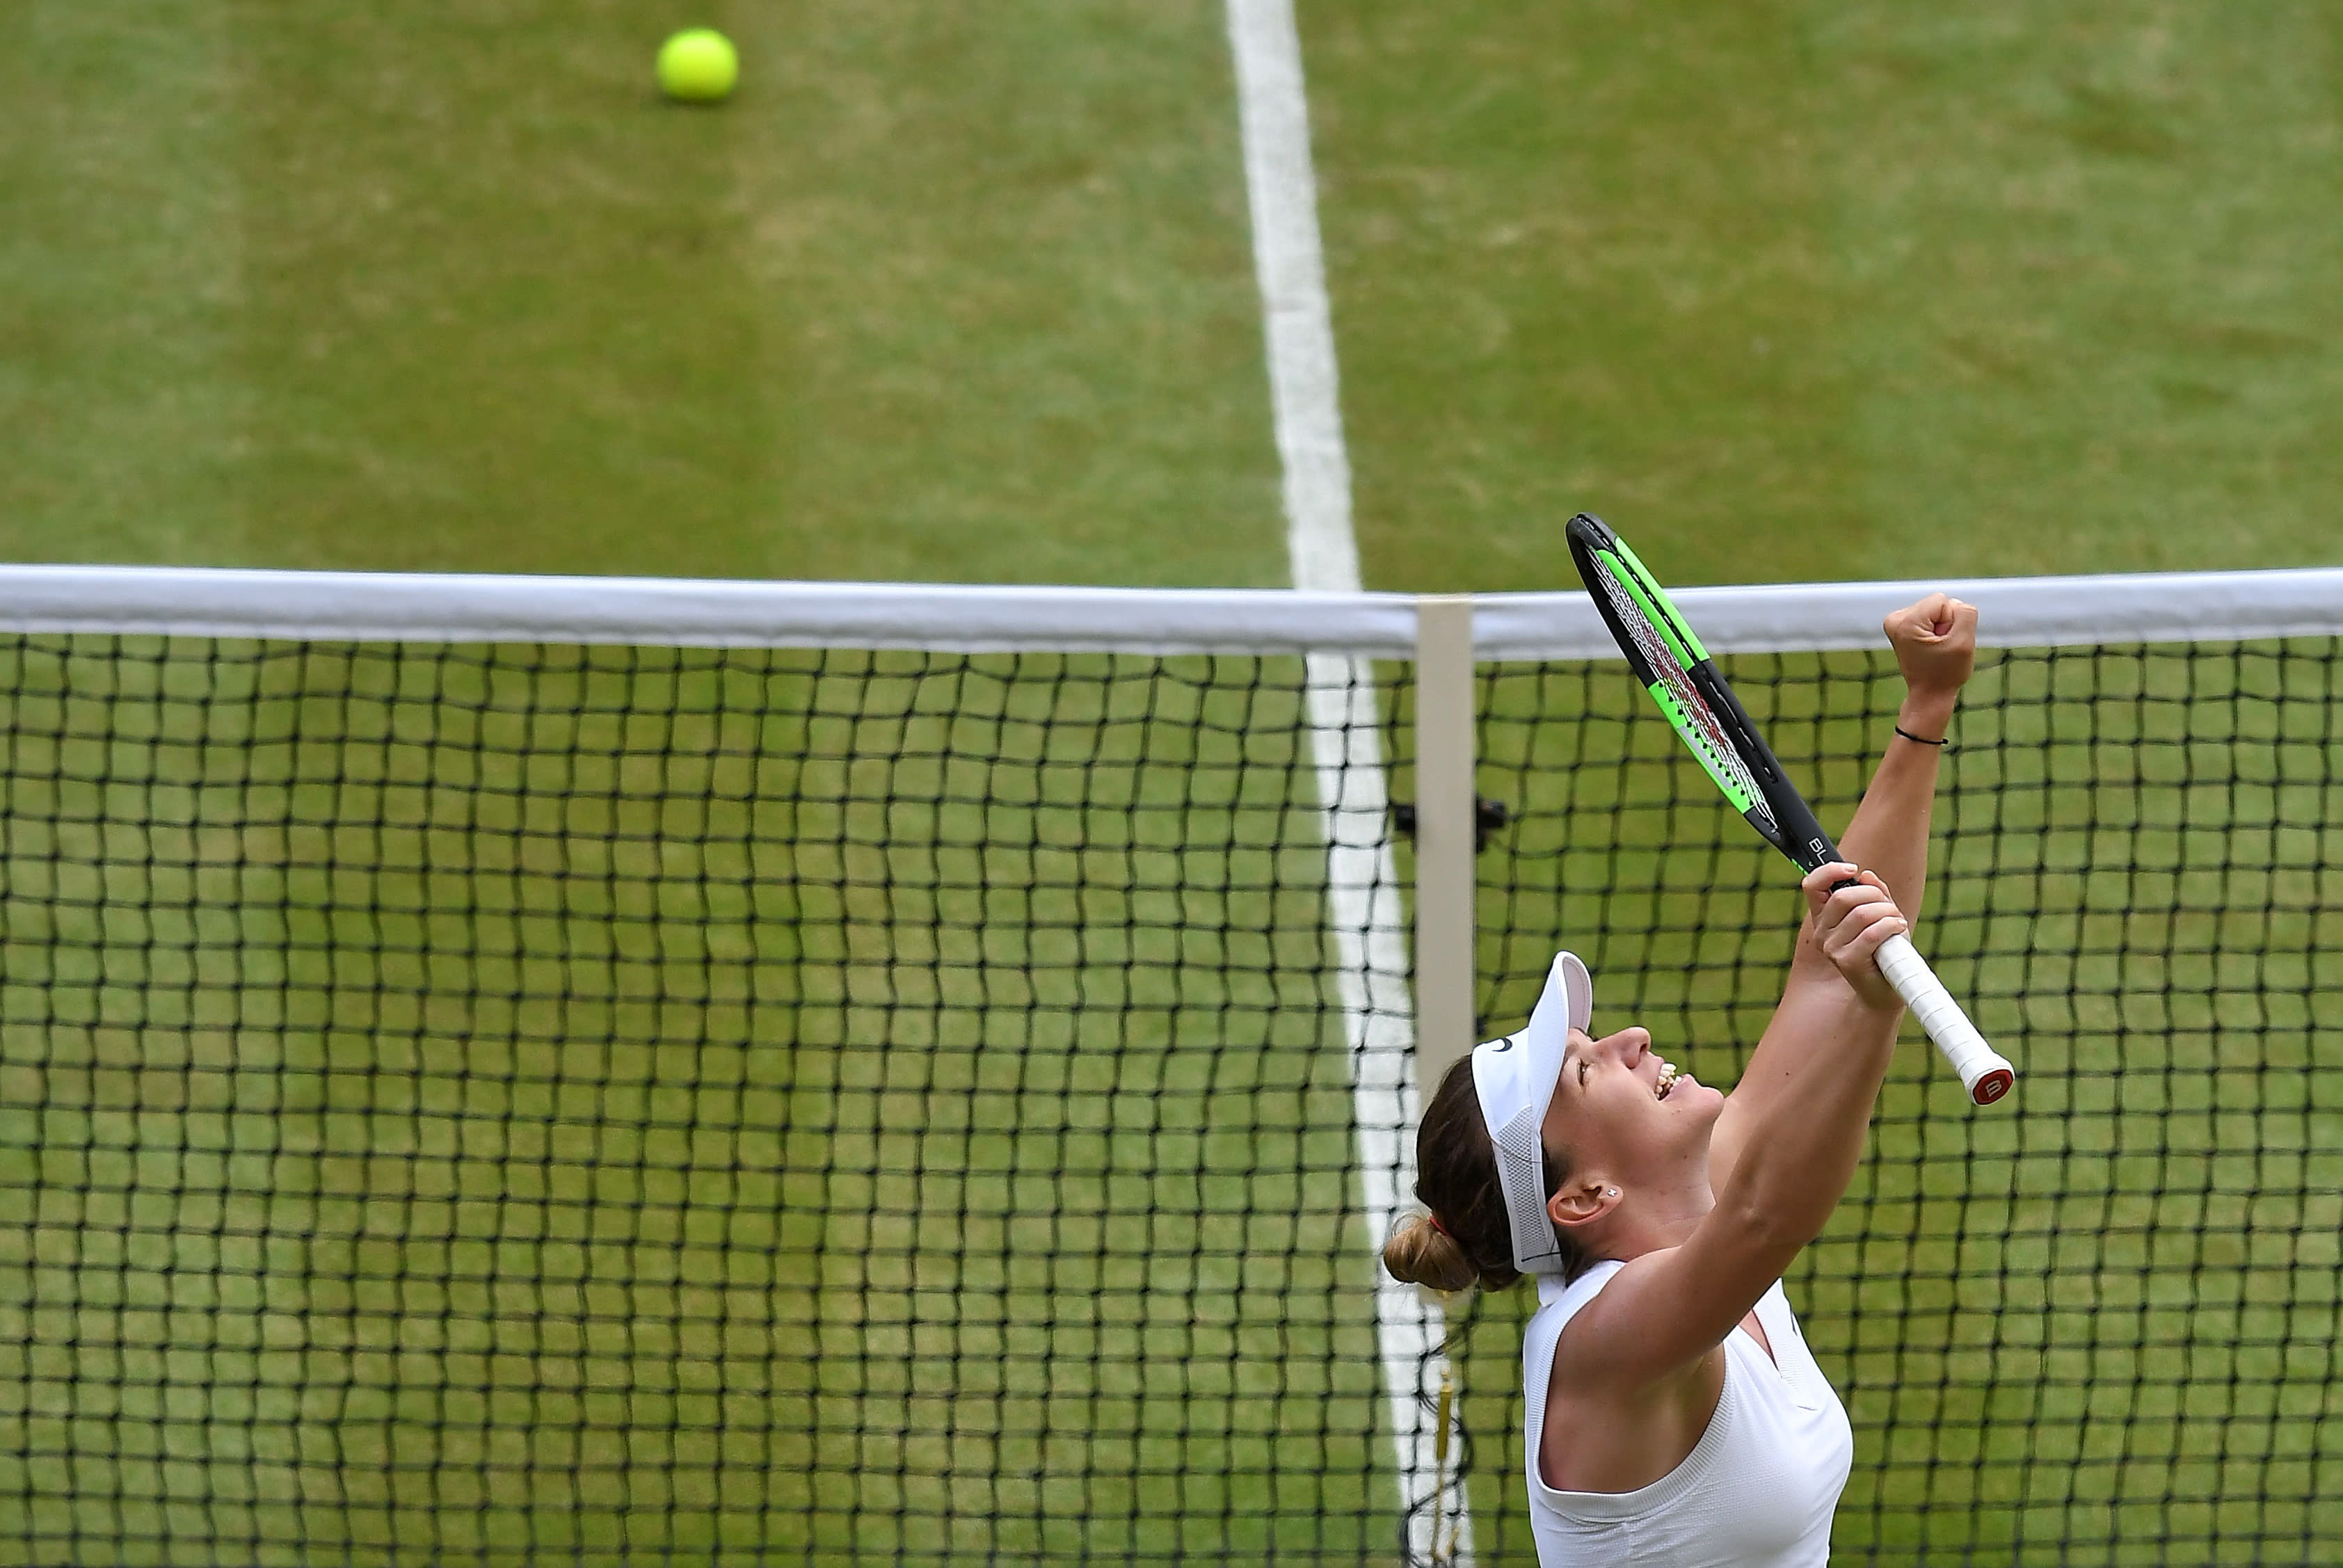 Halep stuns Williams to win Wimbledon title